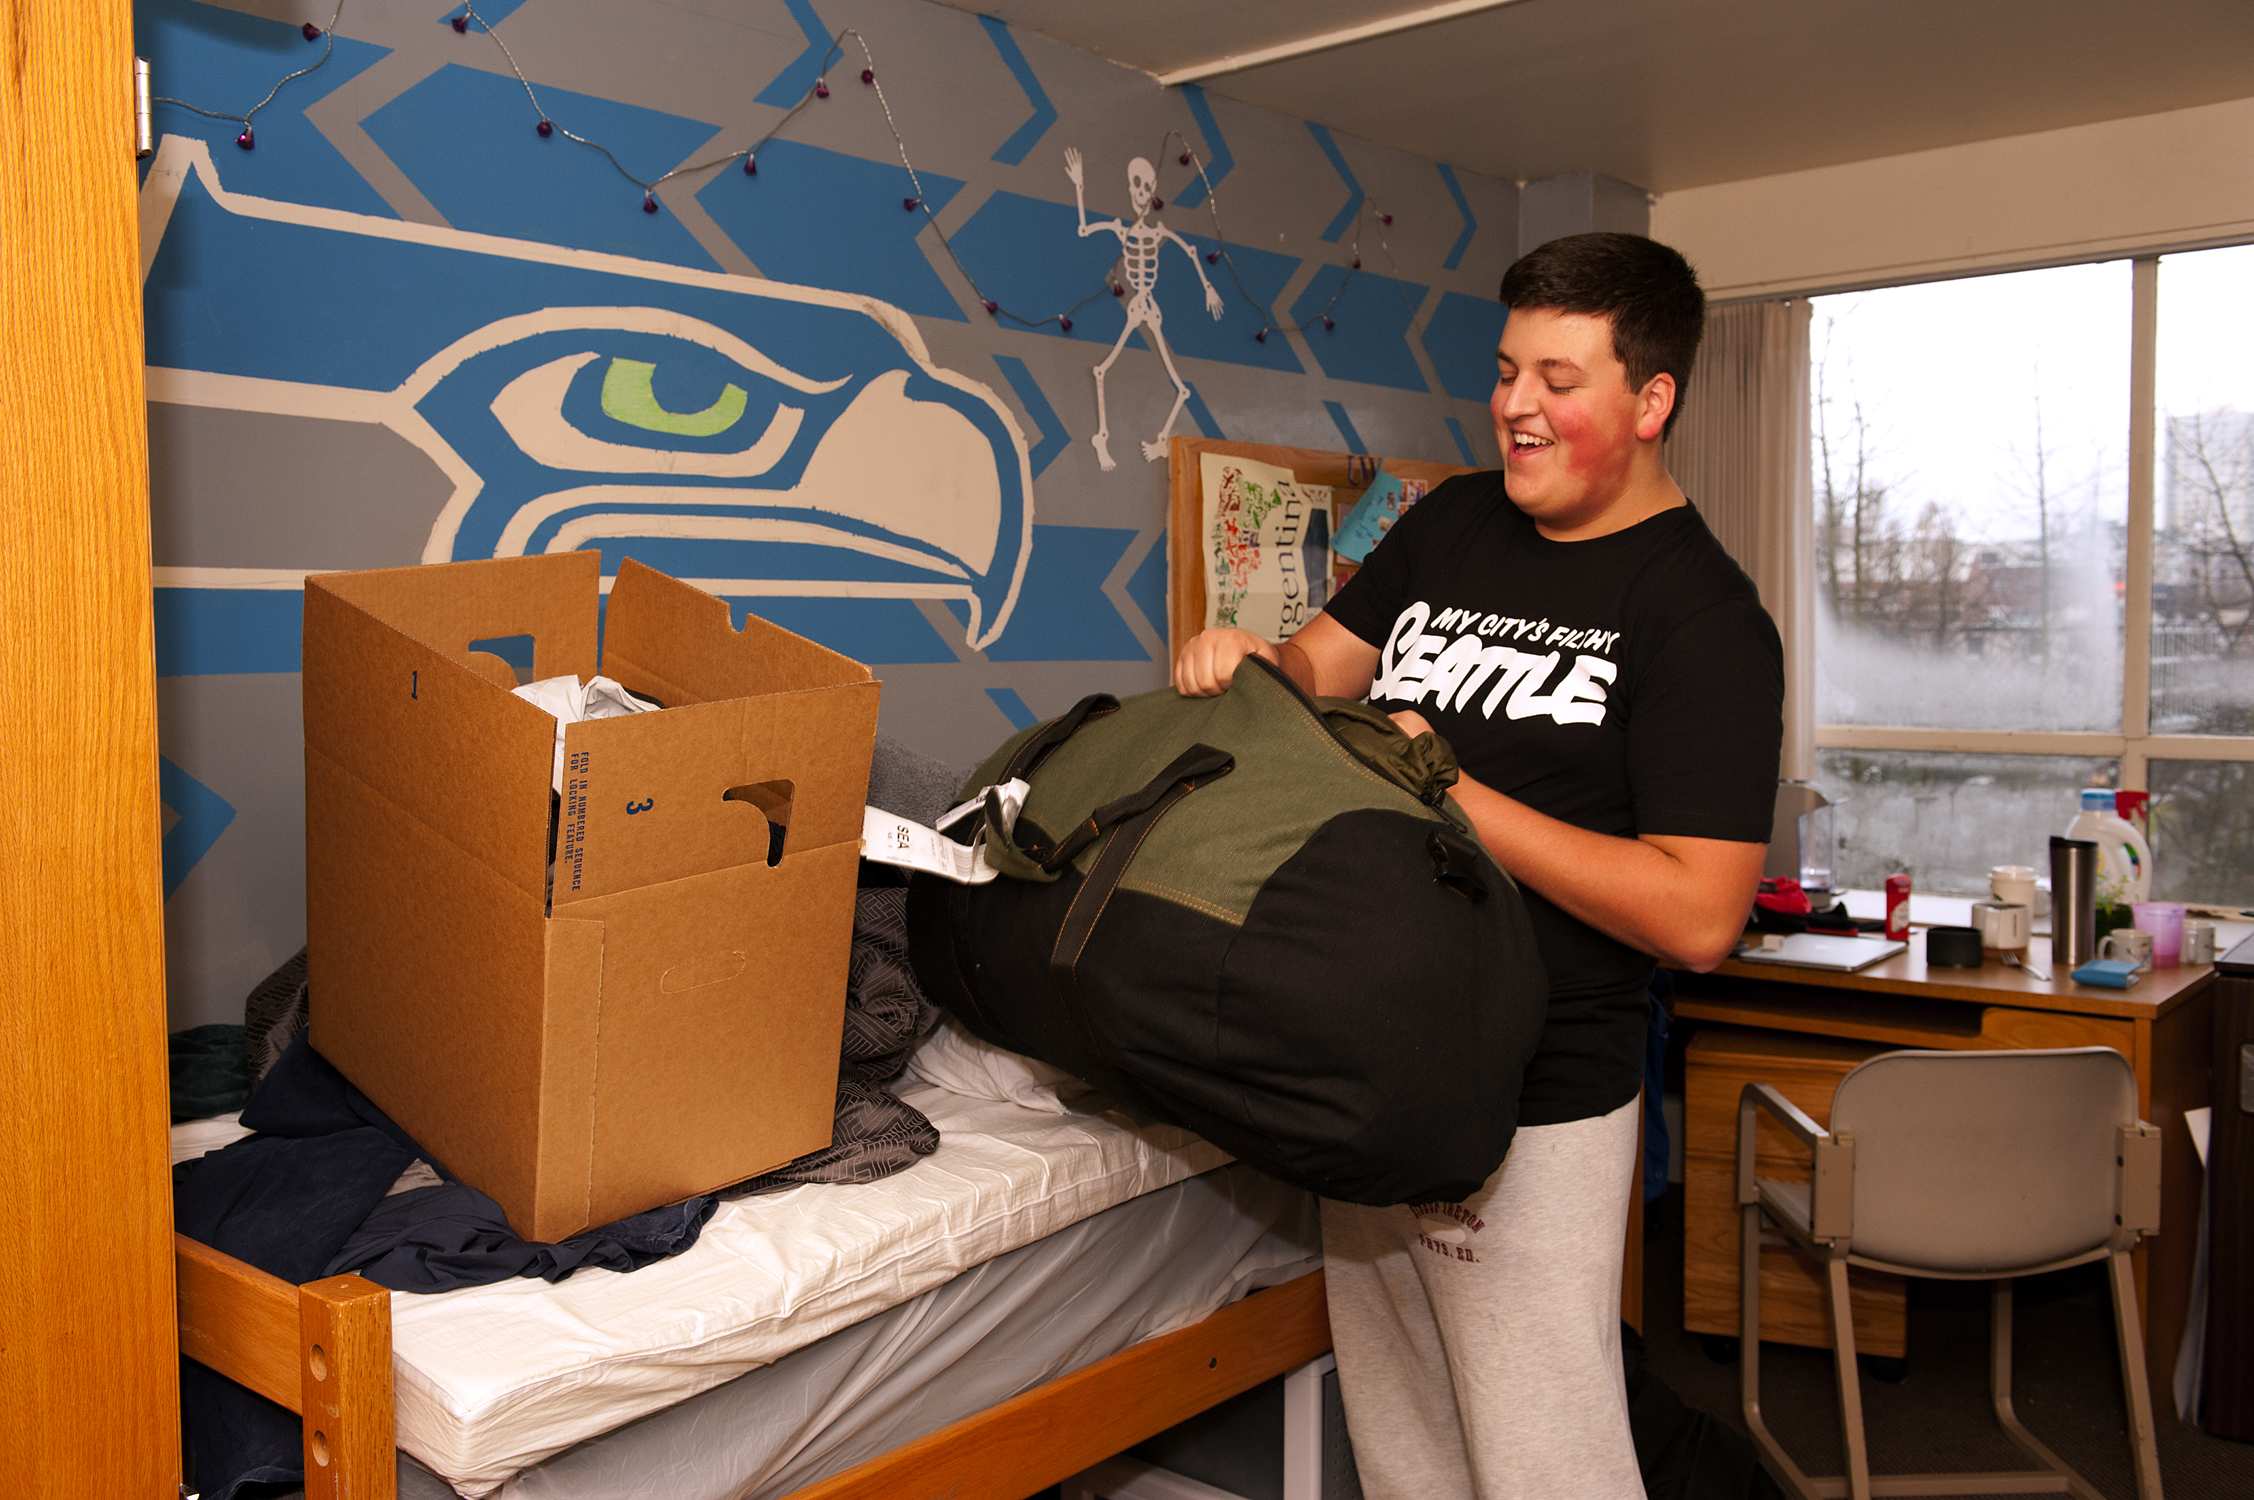 Student Ben Ferrara packs up his room in preparation for moving to the new Lander Hall. Since the building is soon to be closed, he and roommate Evan McAuley were allowed to paint a Seahawks logo on their wall.